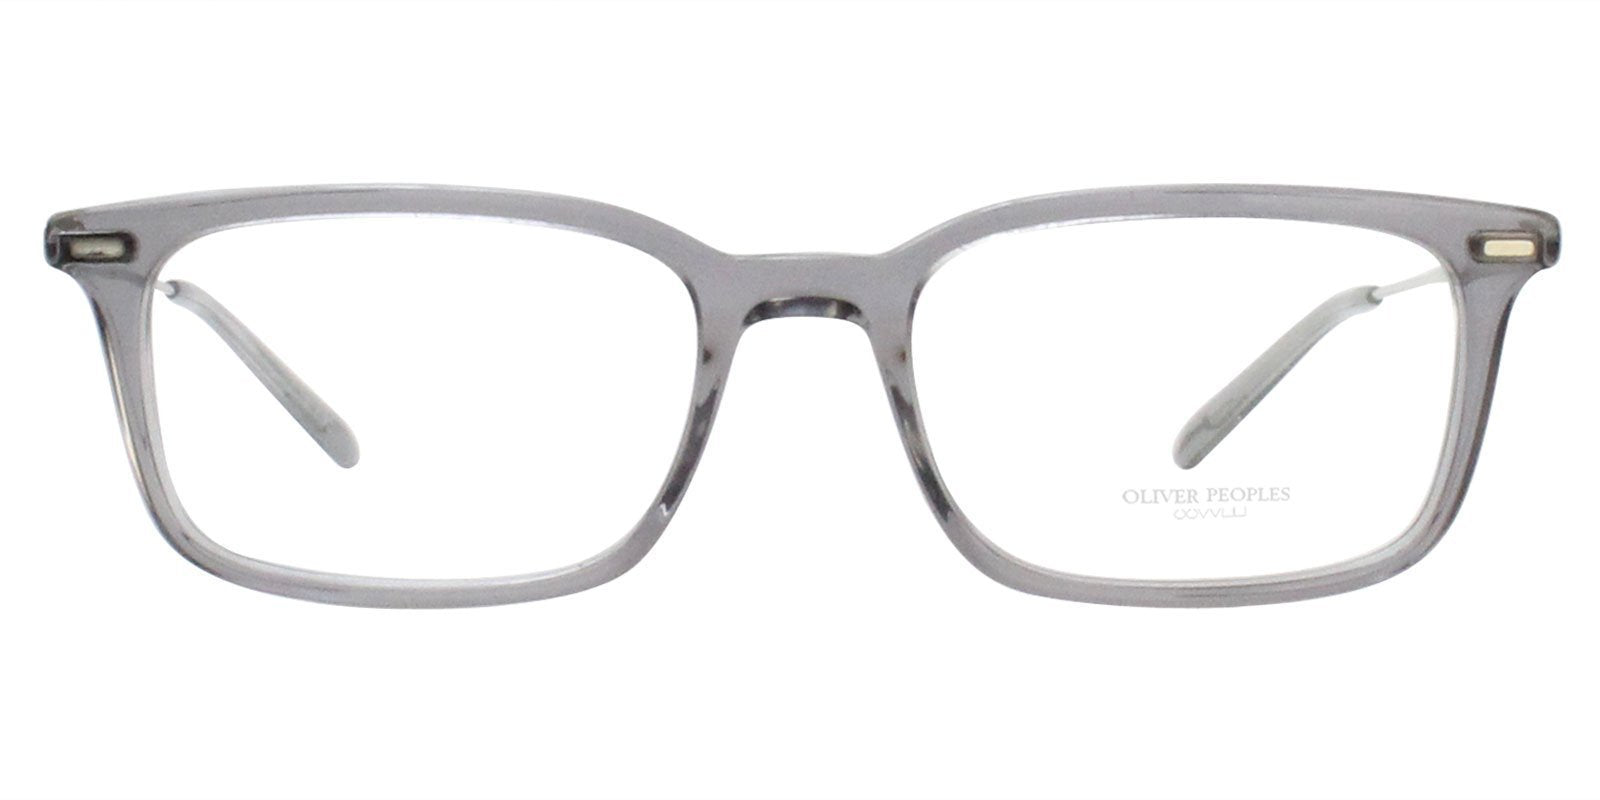 Oliver Peoples - Wexley Grey Unisex Eyeglasses - 52mm-Eyeglasses-Designer Eyes